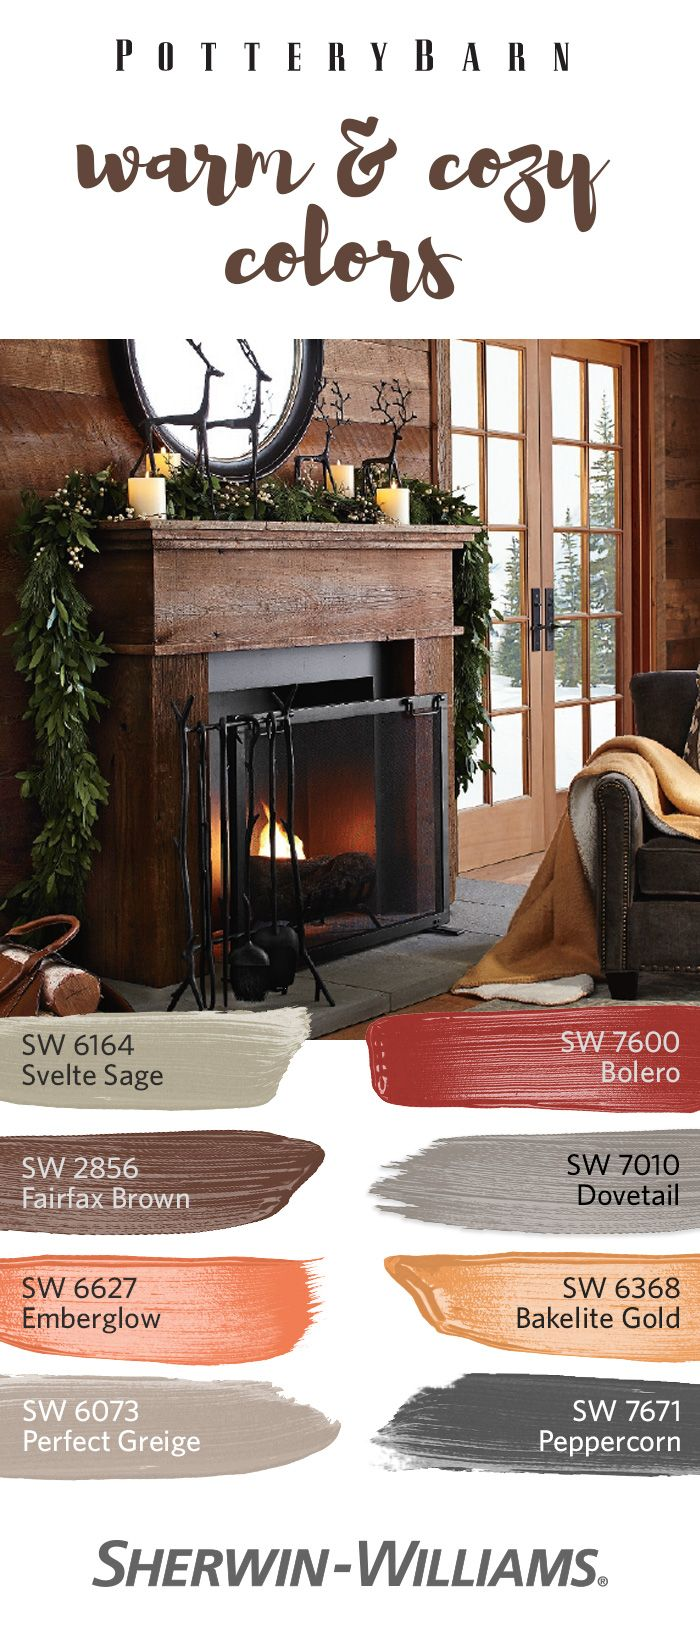 Create a warm and cozy vibe in your home with a color palette inspired by Pottery Barn's 2016 Winter Collection. Bring together earthy browns like Fairfax Brown 2856, warm neutrals like Perfect Greige SW 6073  and cheery reds like Bolero SW 7600 to create a warm and cozy look that will pair well with your favorite Pottery Barn pieces and last all season long.